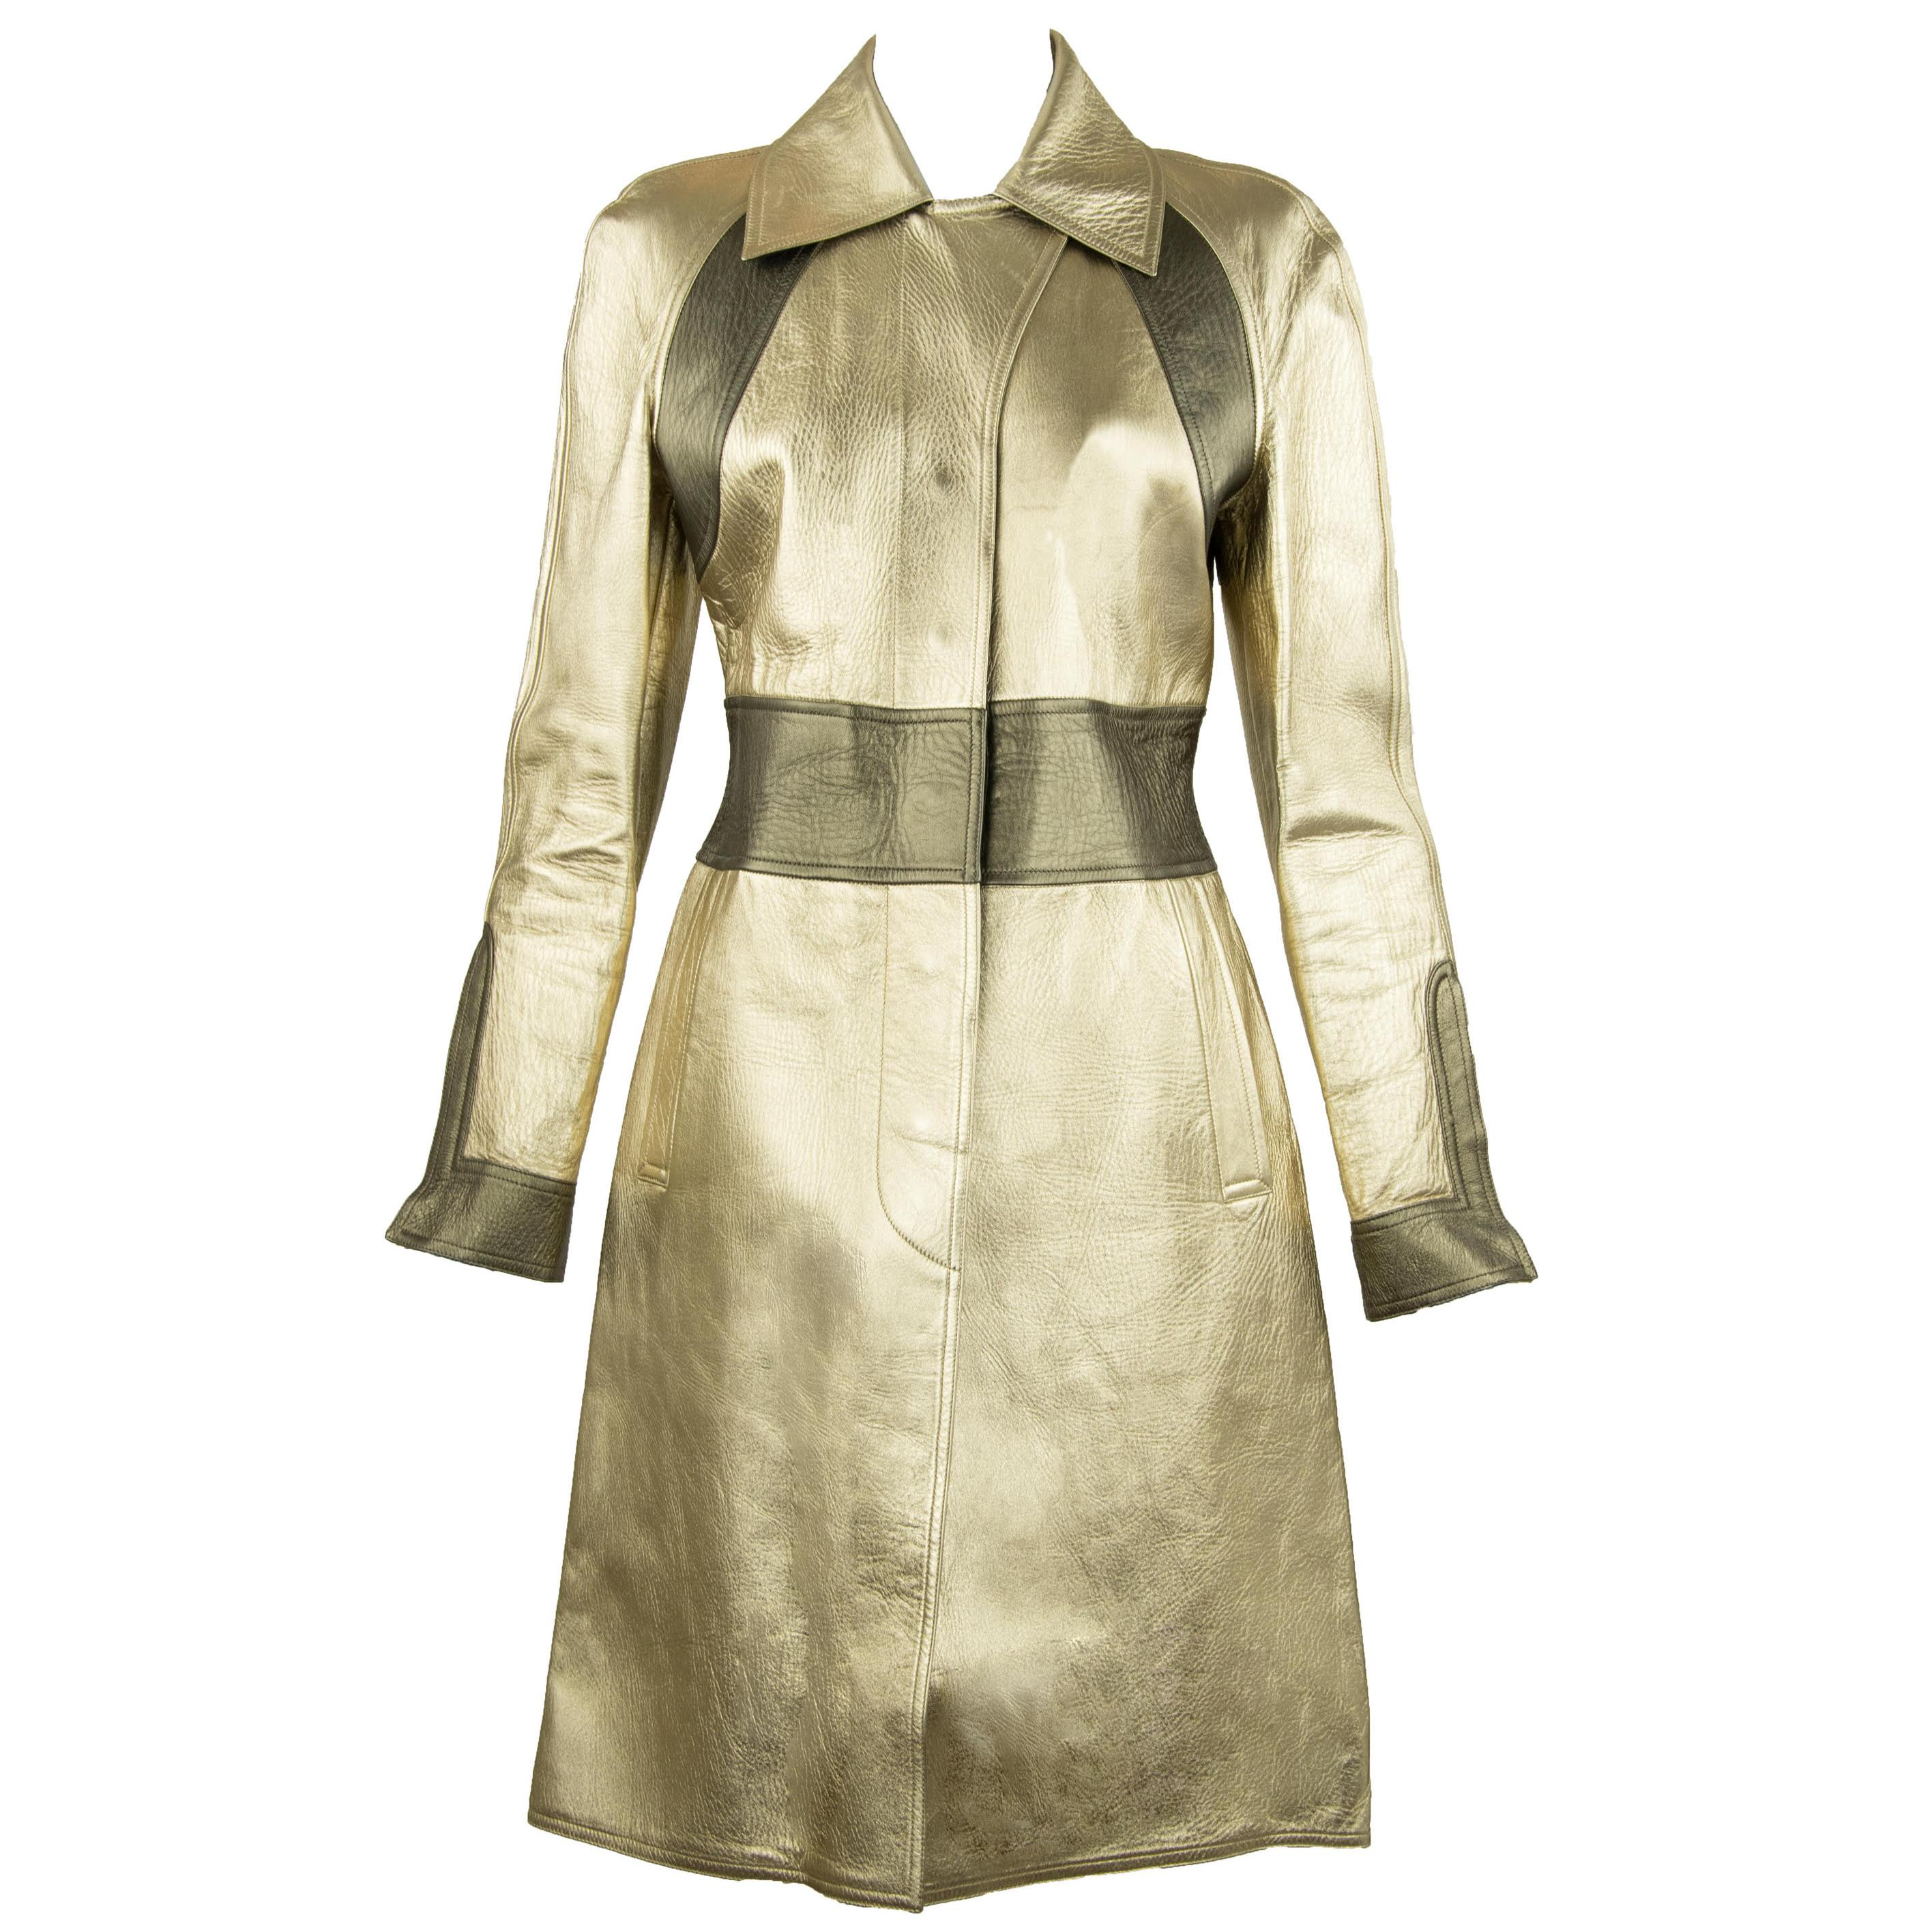 599c0adb1 Gucci by Tom Ford Gold Leather jacket For Sale at 1stdibs